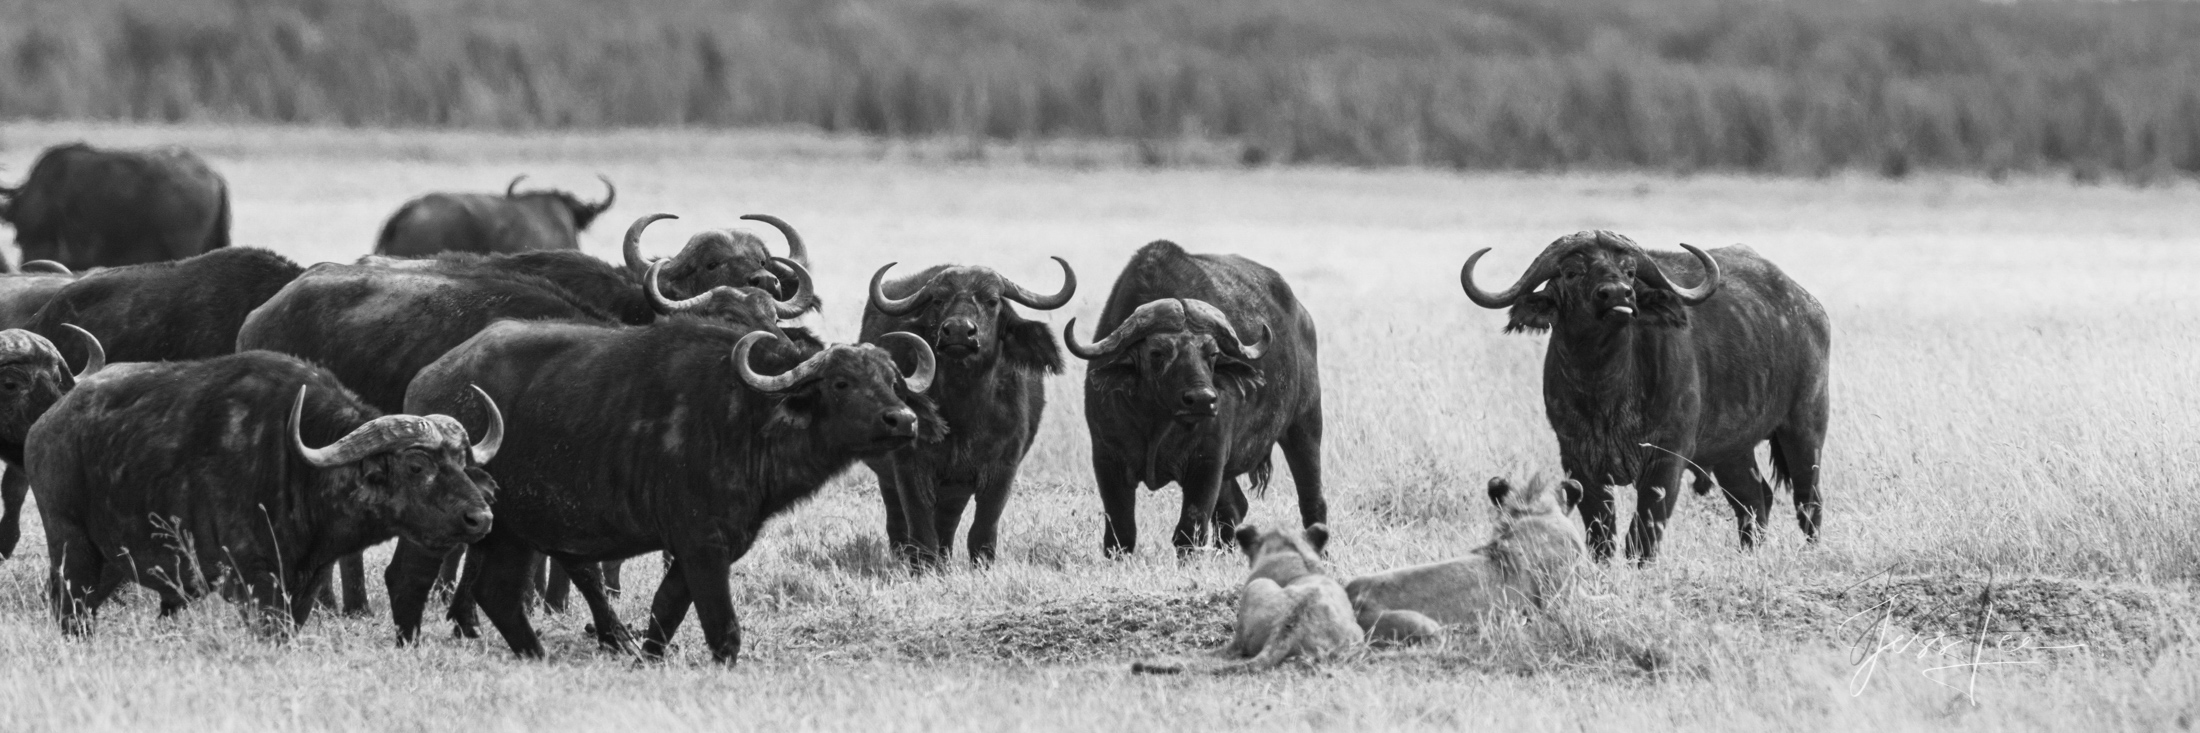 Black and White photo of African Lions being ask to move by Cape Buffalo Herd.